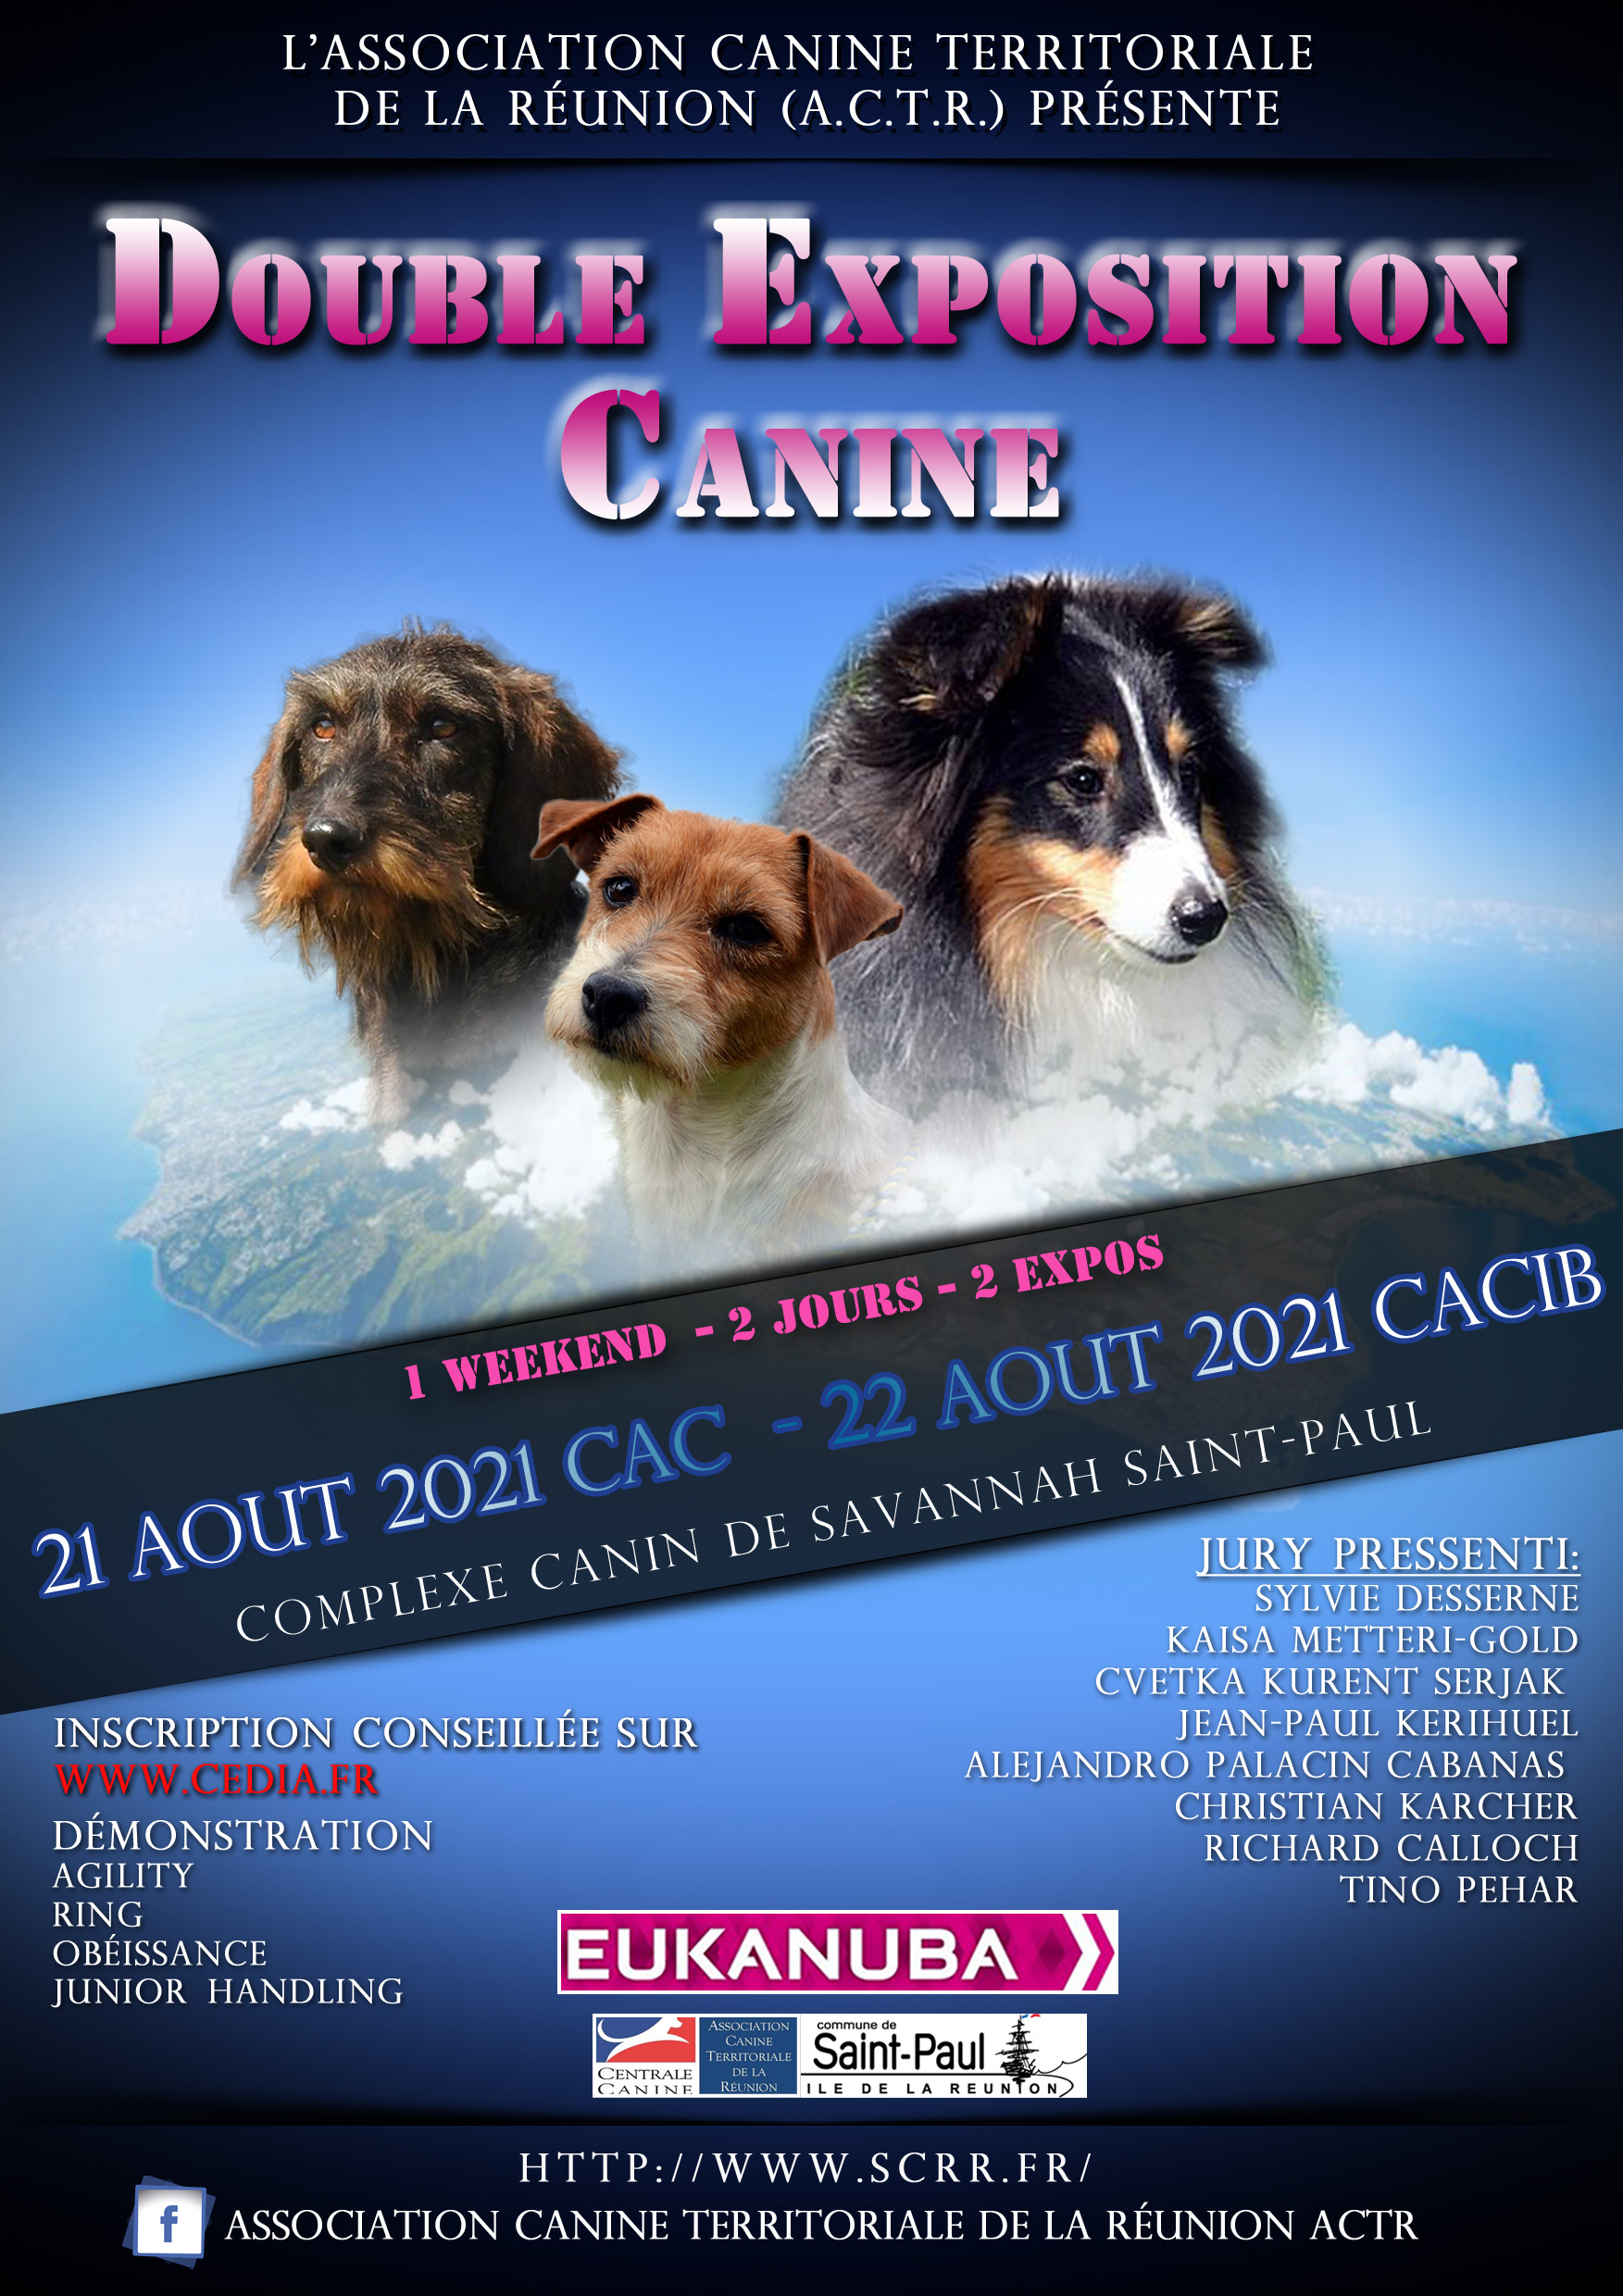 Calendrier Confirmation Canine 2022 ACTR